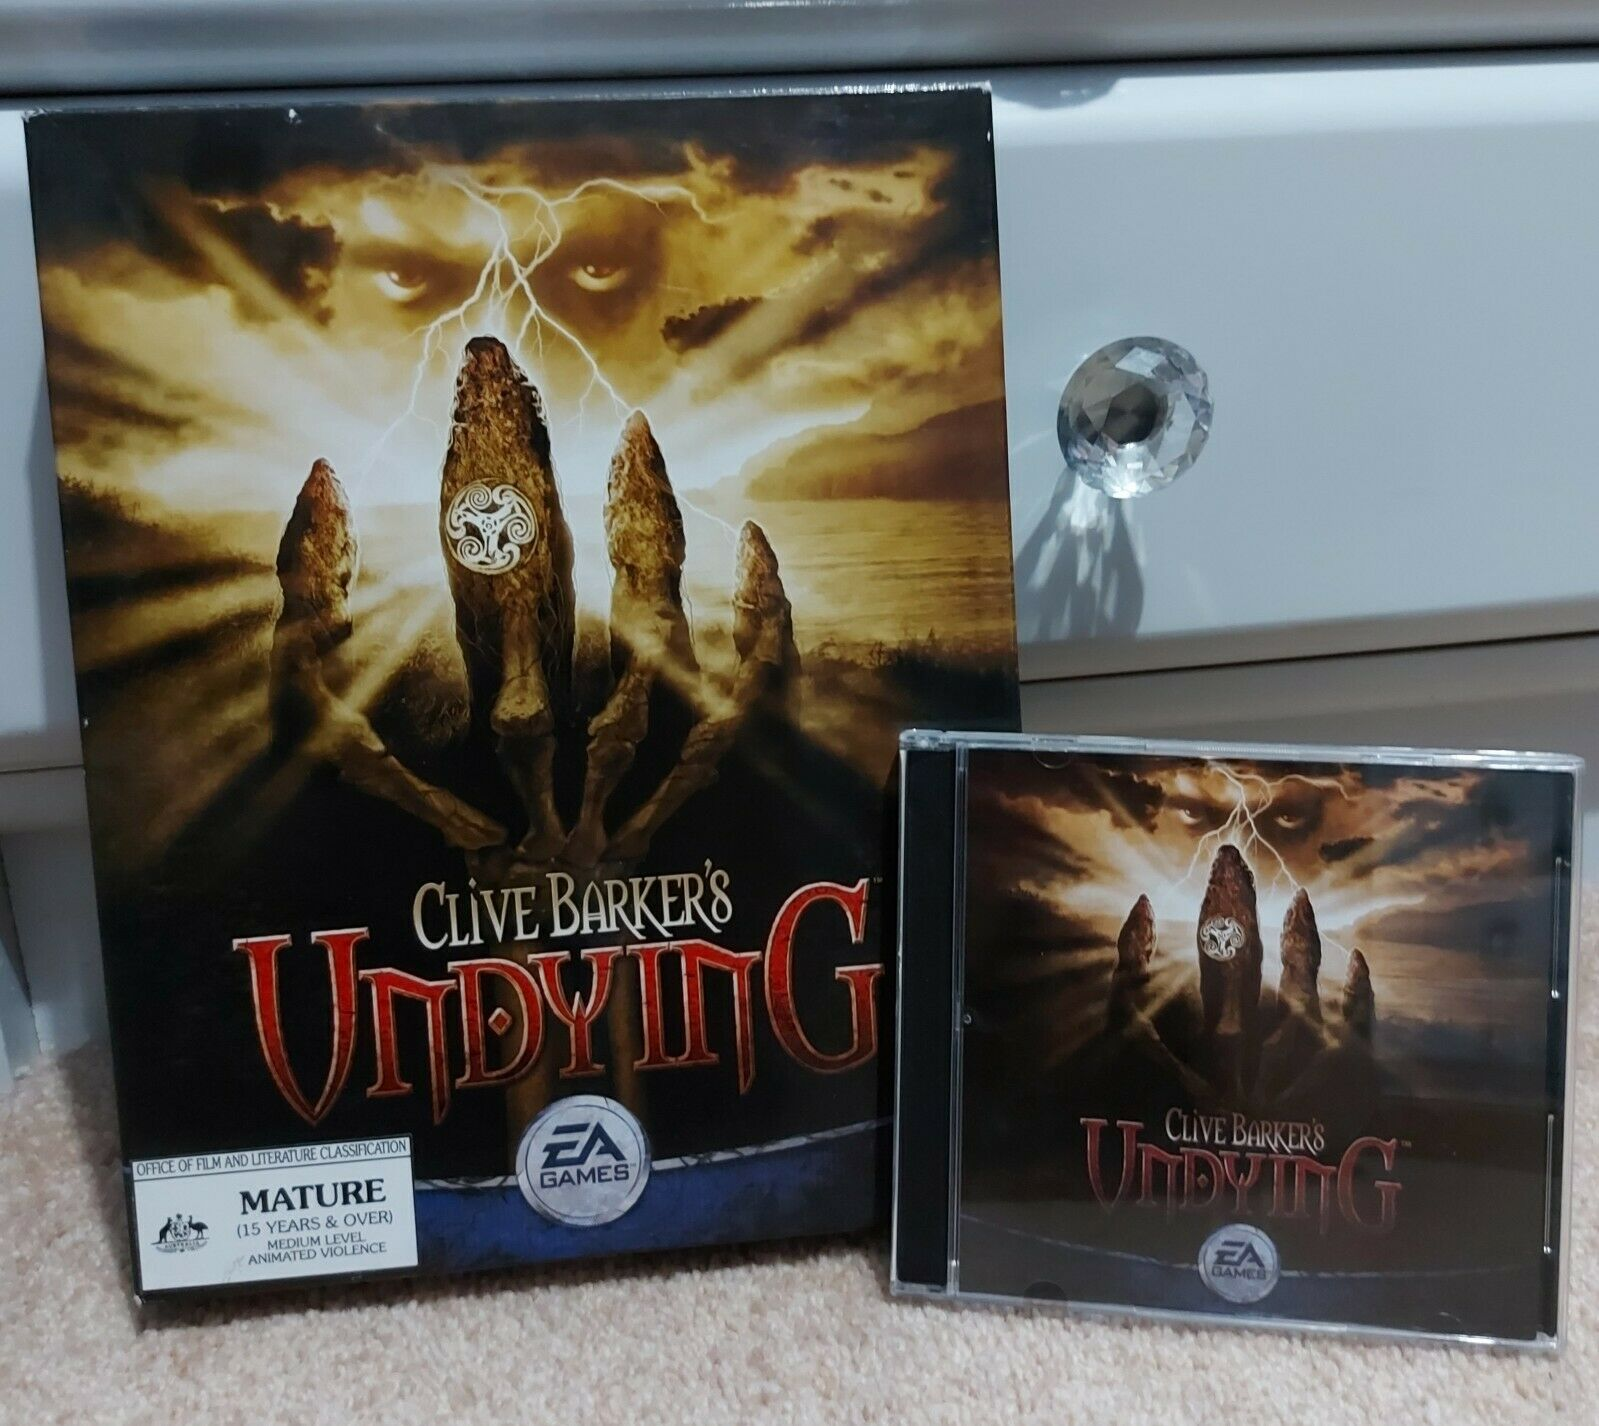 Computer Games - CLIVE BARKER'S UNDYING CD-ROM PC Game Computer Vintage EA Games Big Box HORROR